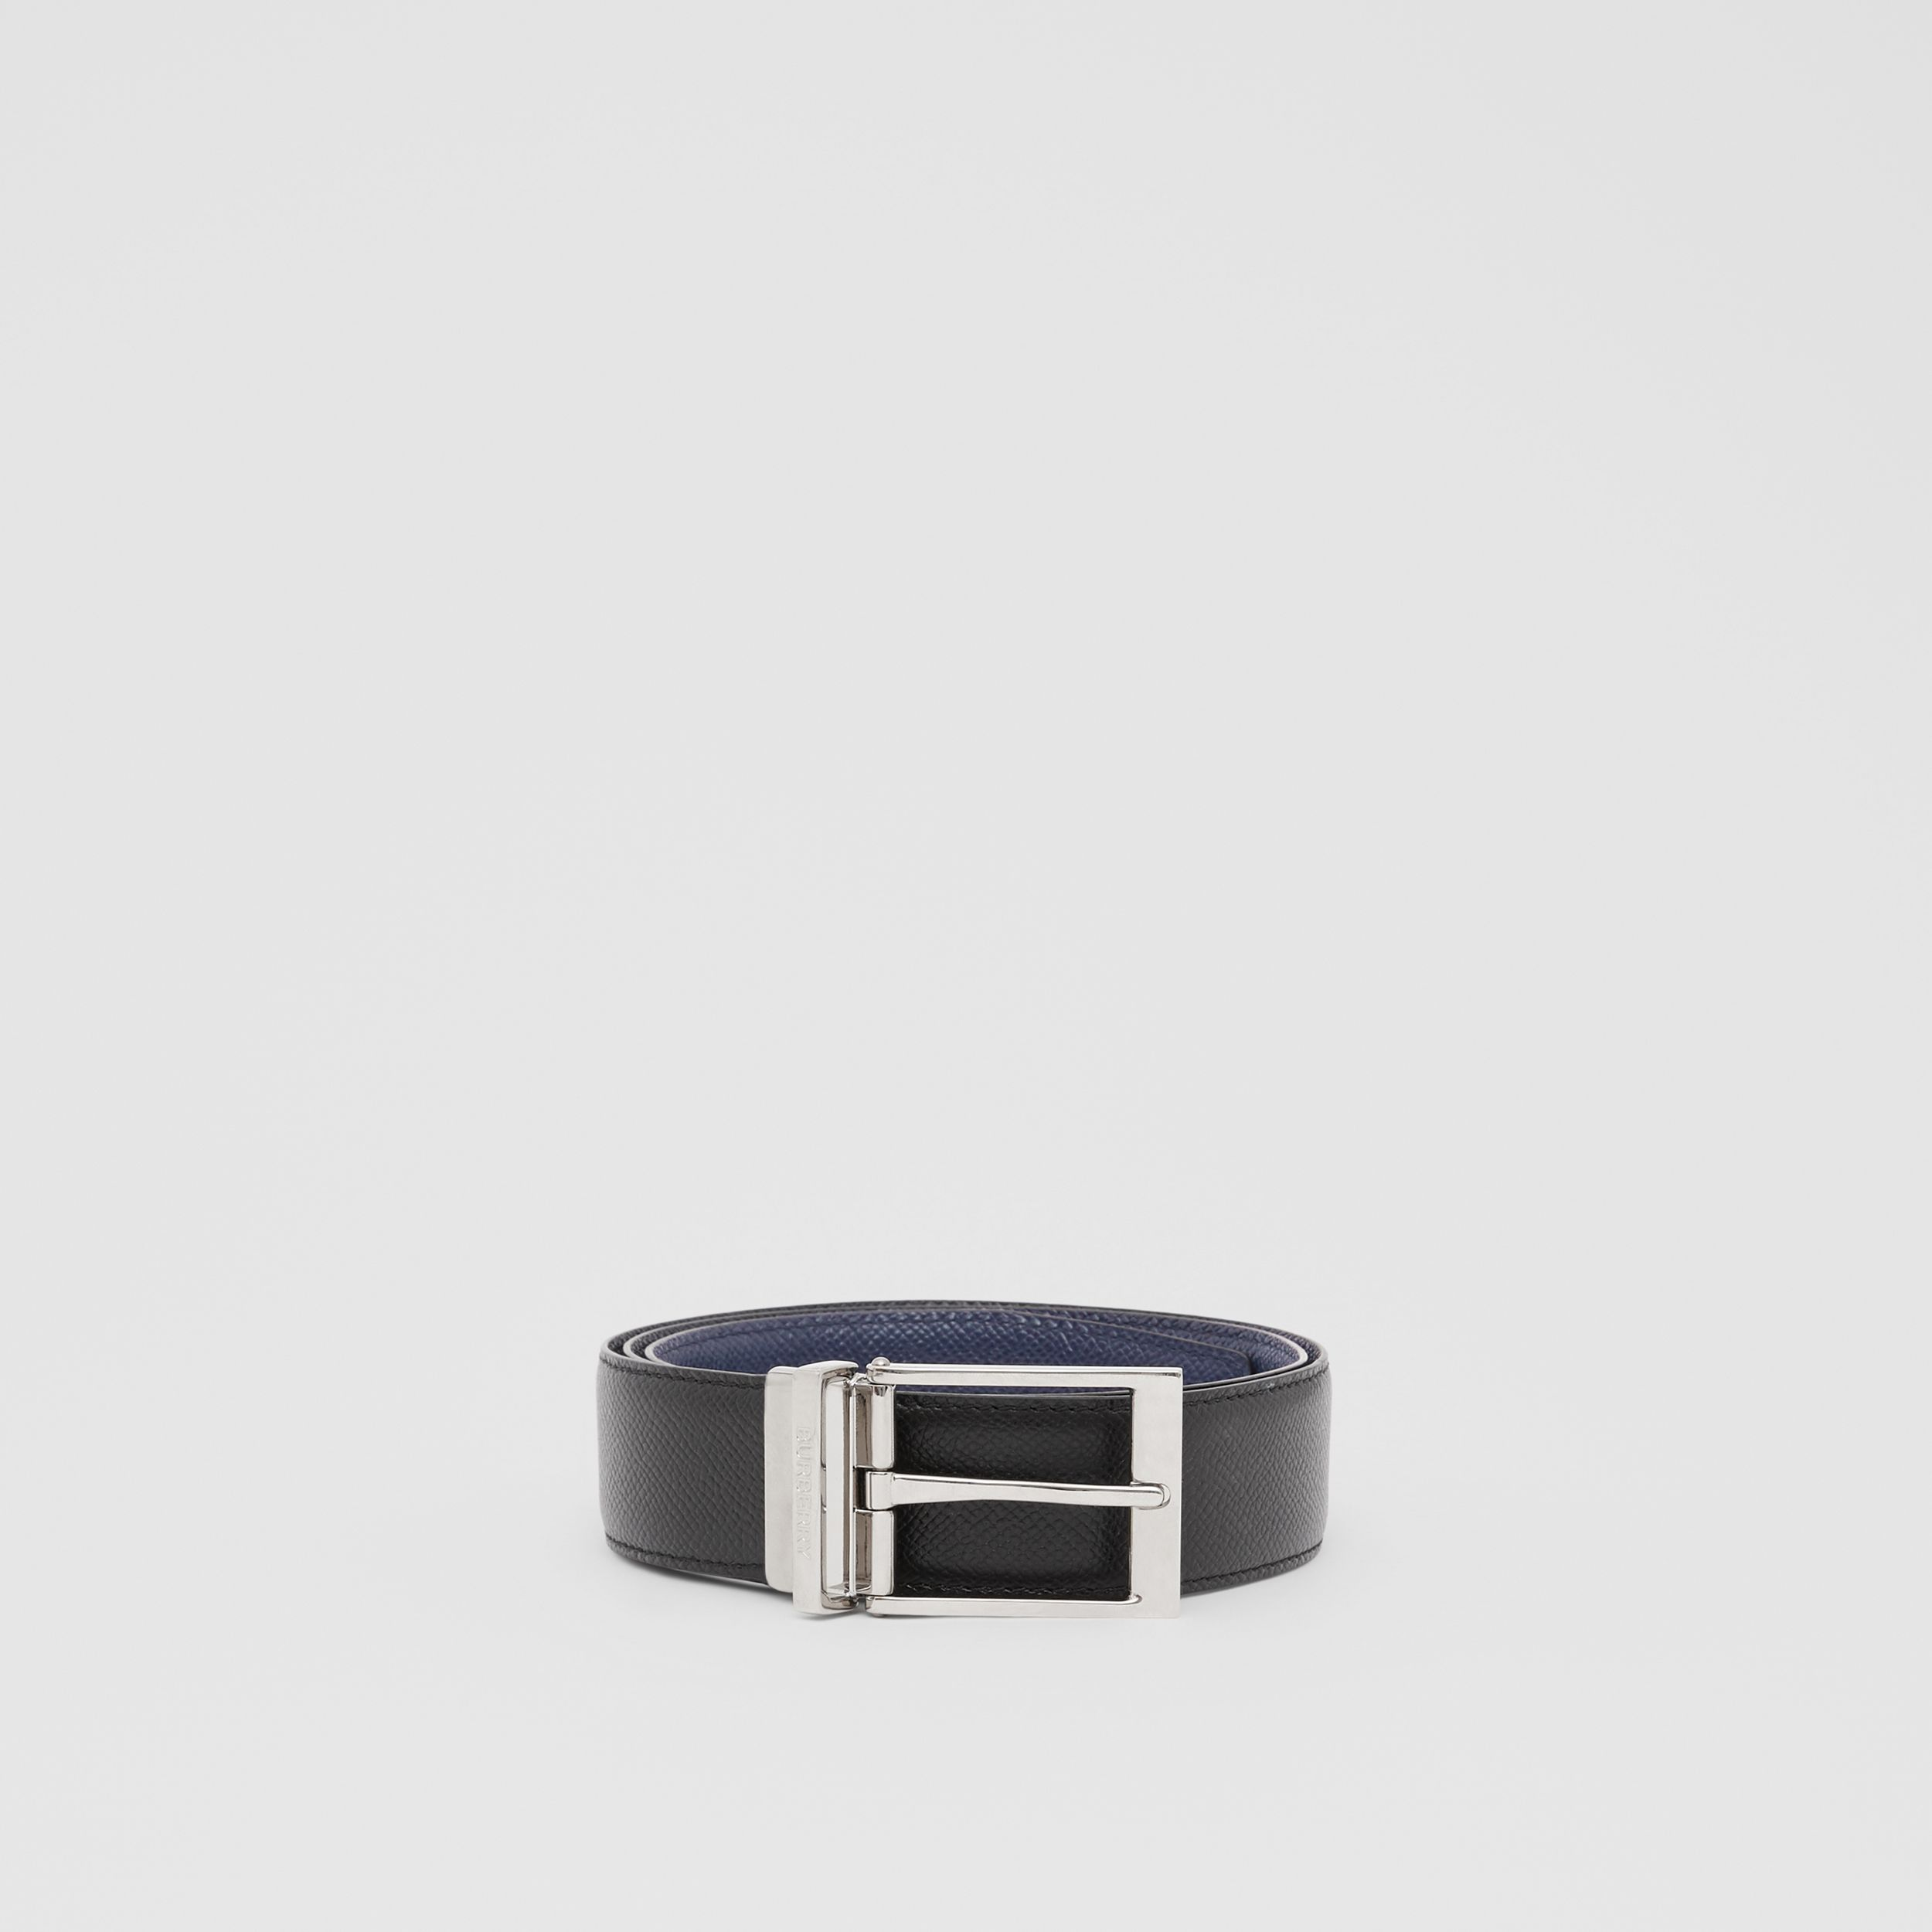 Reversible Grainy Leather Belt in Regency Blue/black - Men | Burberry - 4